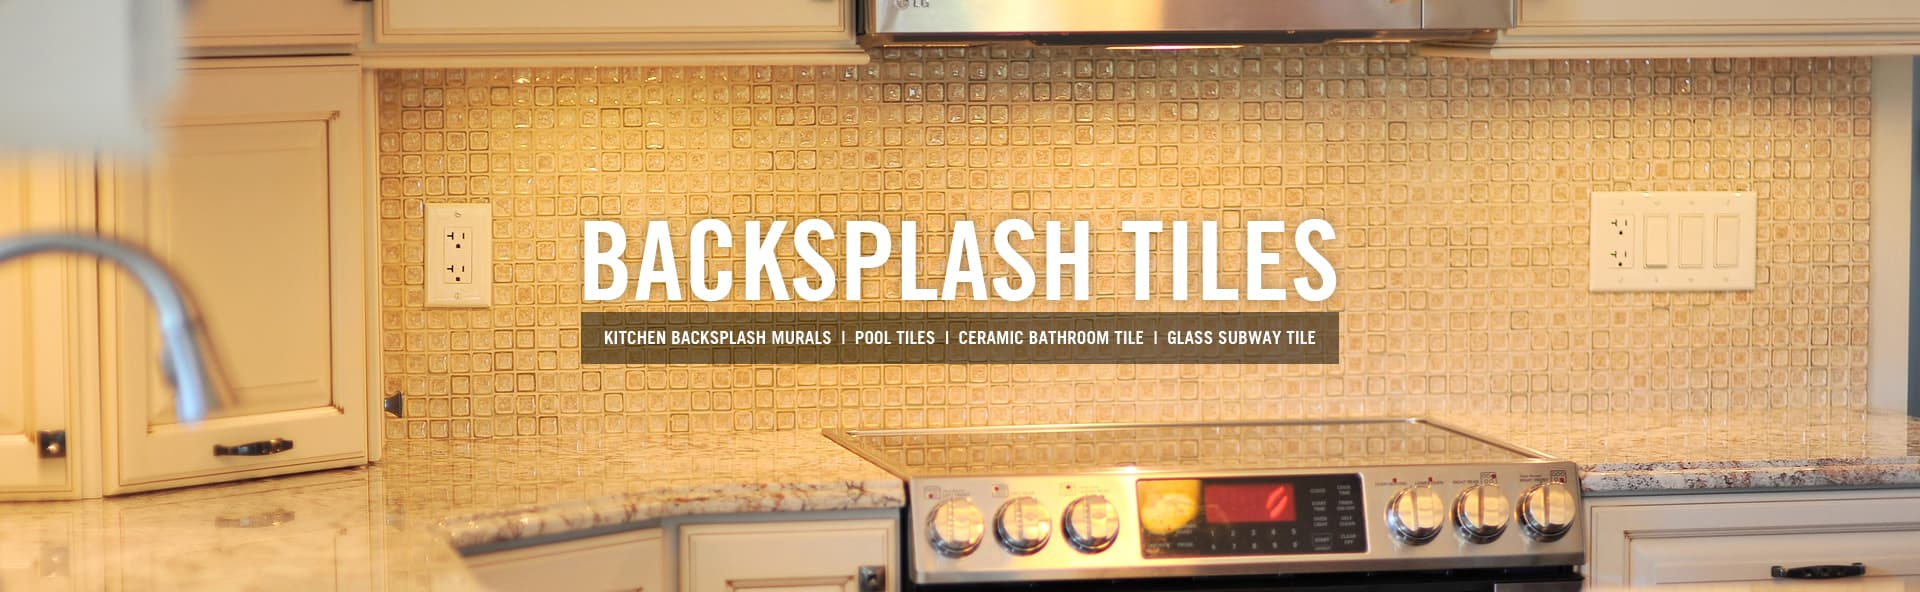 Best Kitchen Backsplash Tile and Mosaic Online | Online Tile Store |Belk Tile